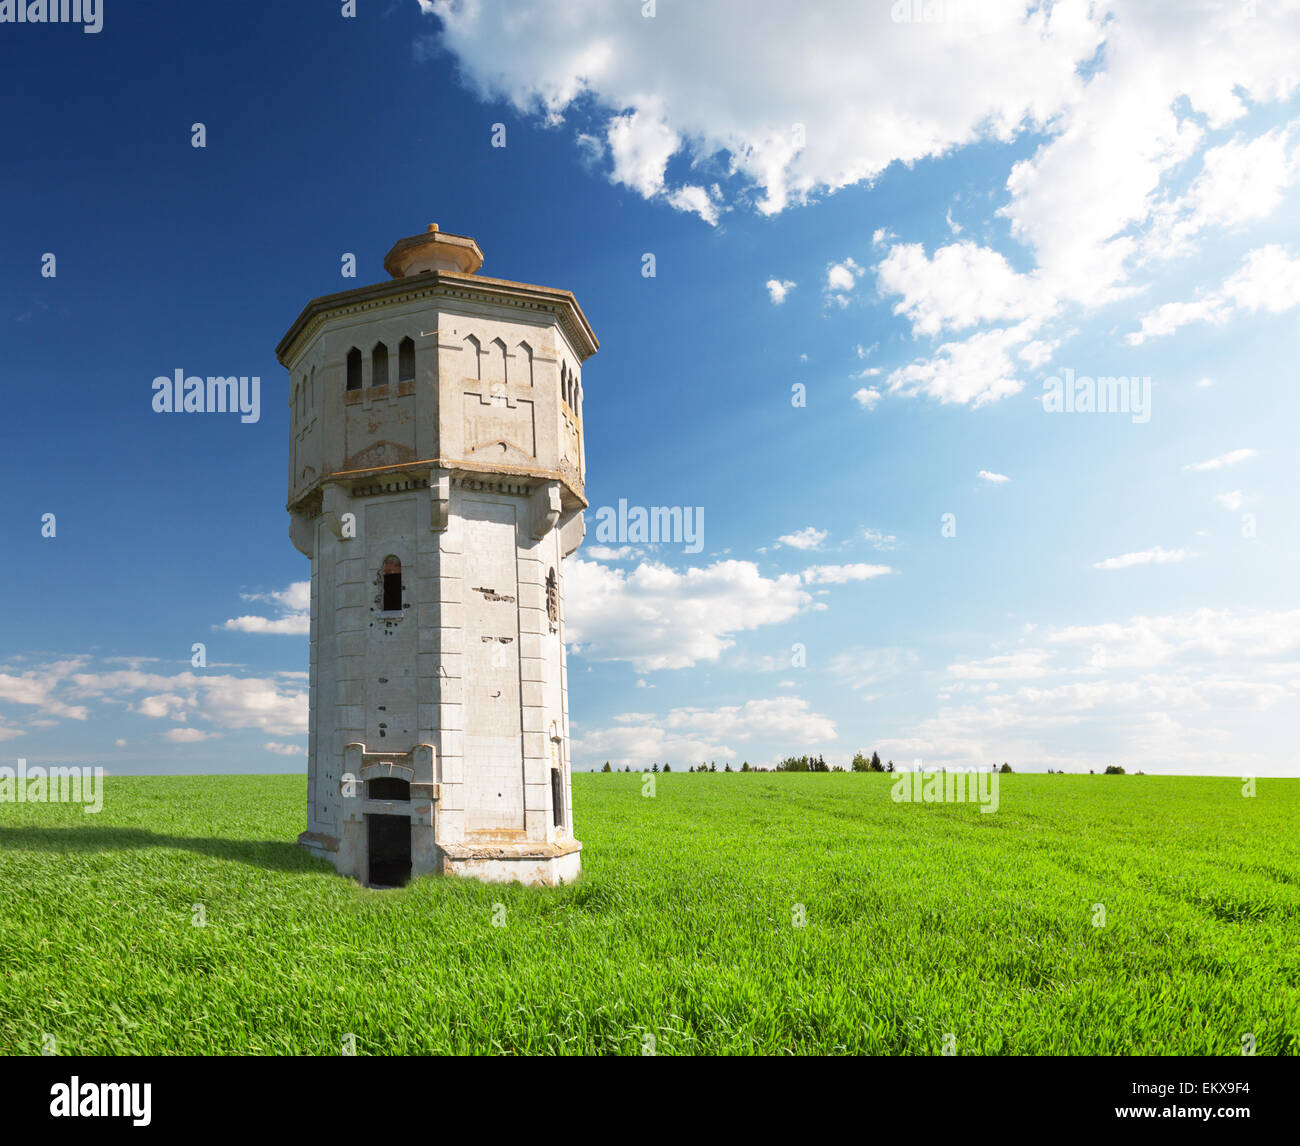 green field and ancient stone tower - Stock Image